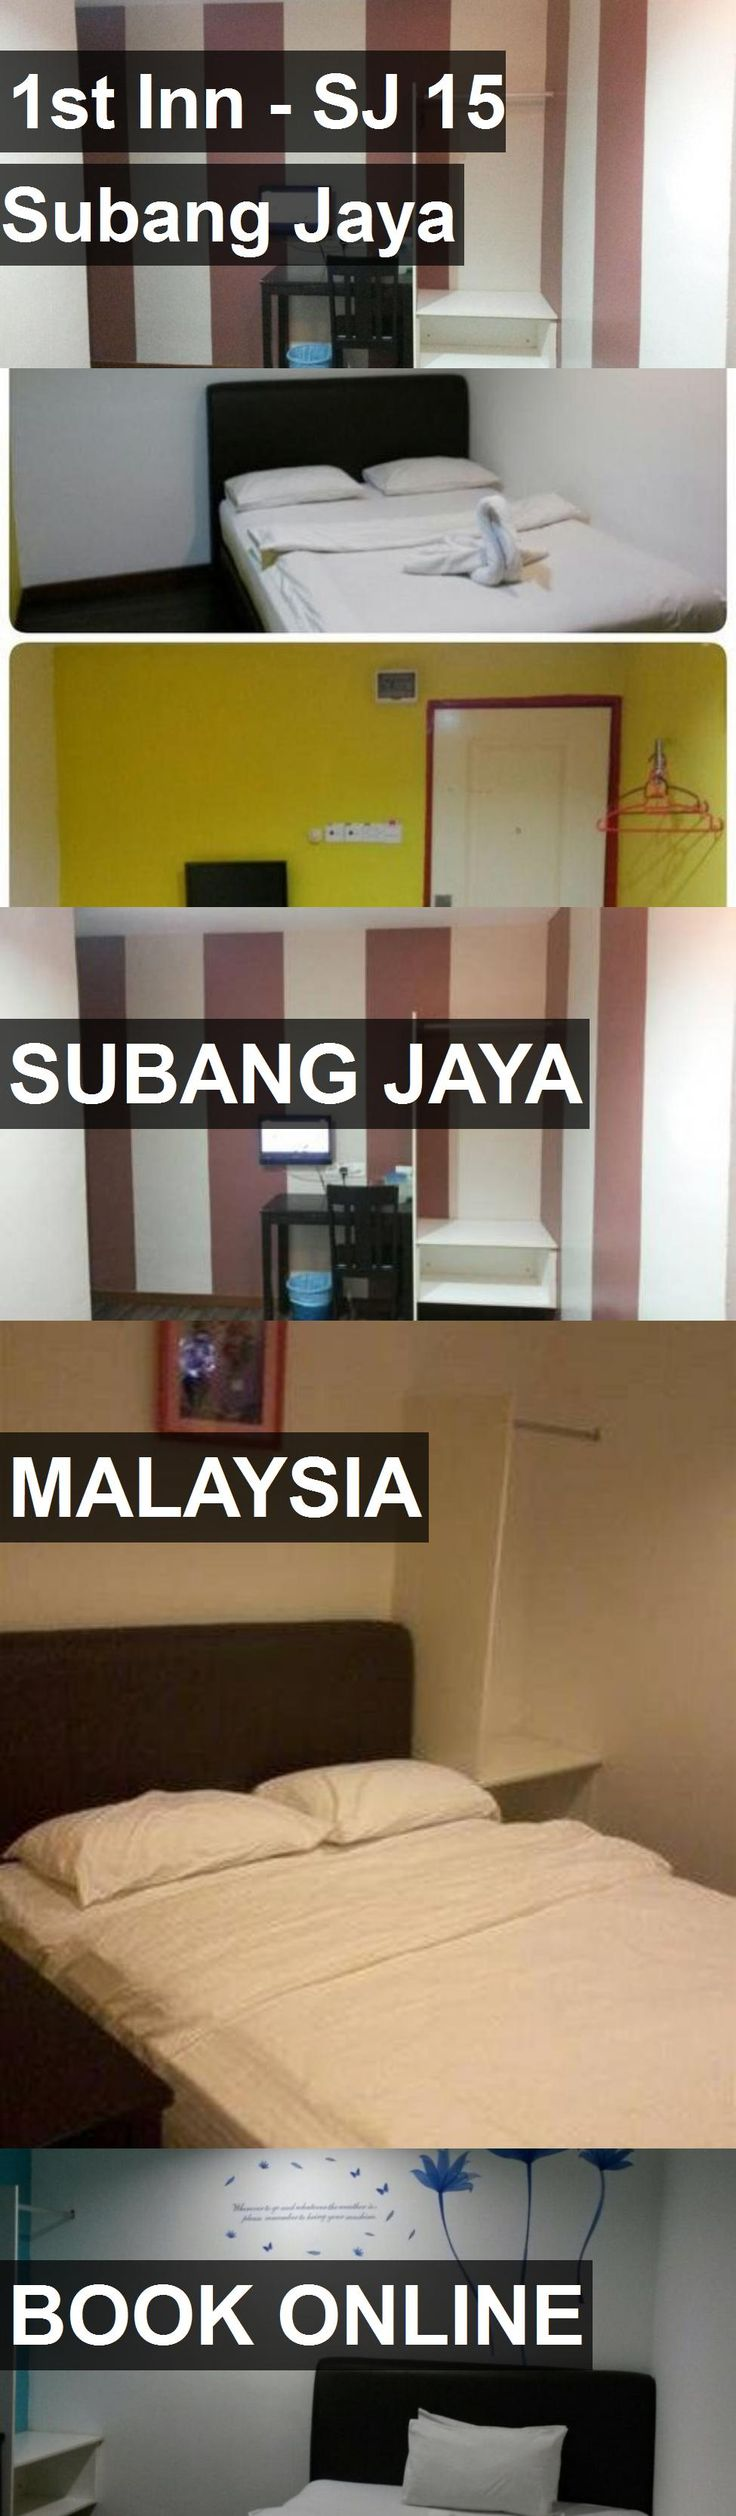 Hotel 1st Inn - SJ 15 Subang Jaya in Subang Jaya, Malaysia. For more information, photos, reviews and best prices please follow the link. #Malaysia #SubangJaya #1stInn-SJ15SubangJaya #hotel #travel #vacation